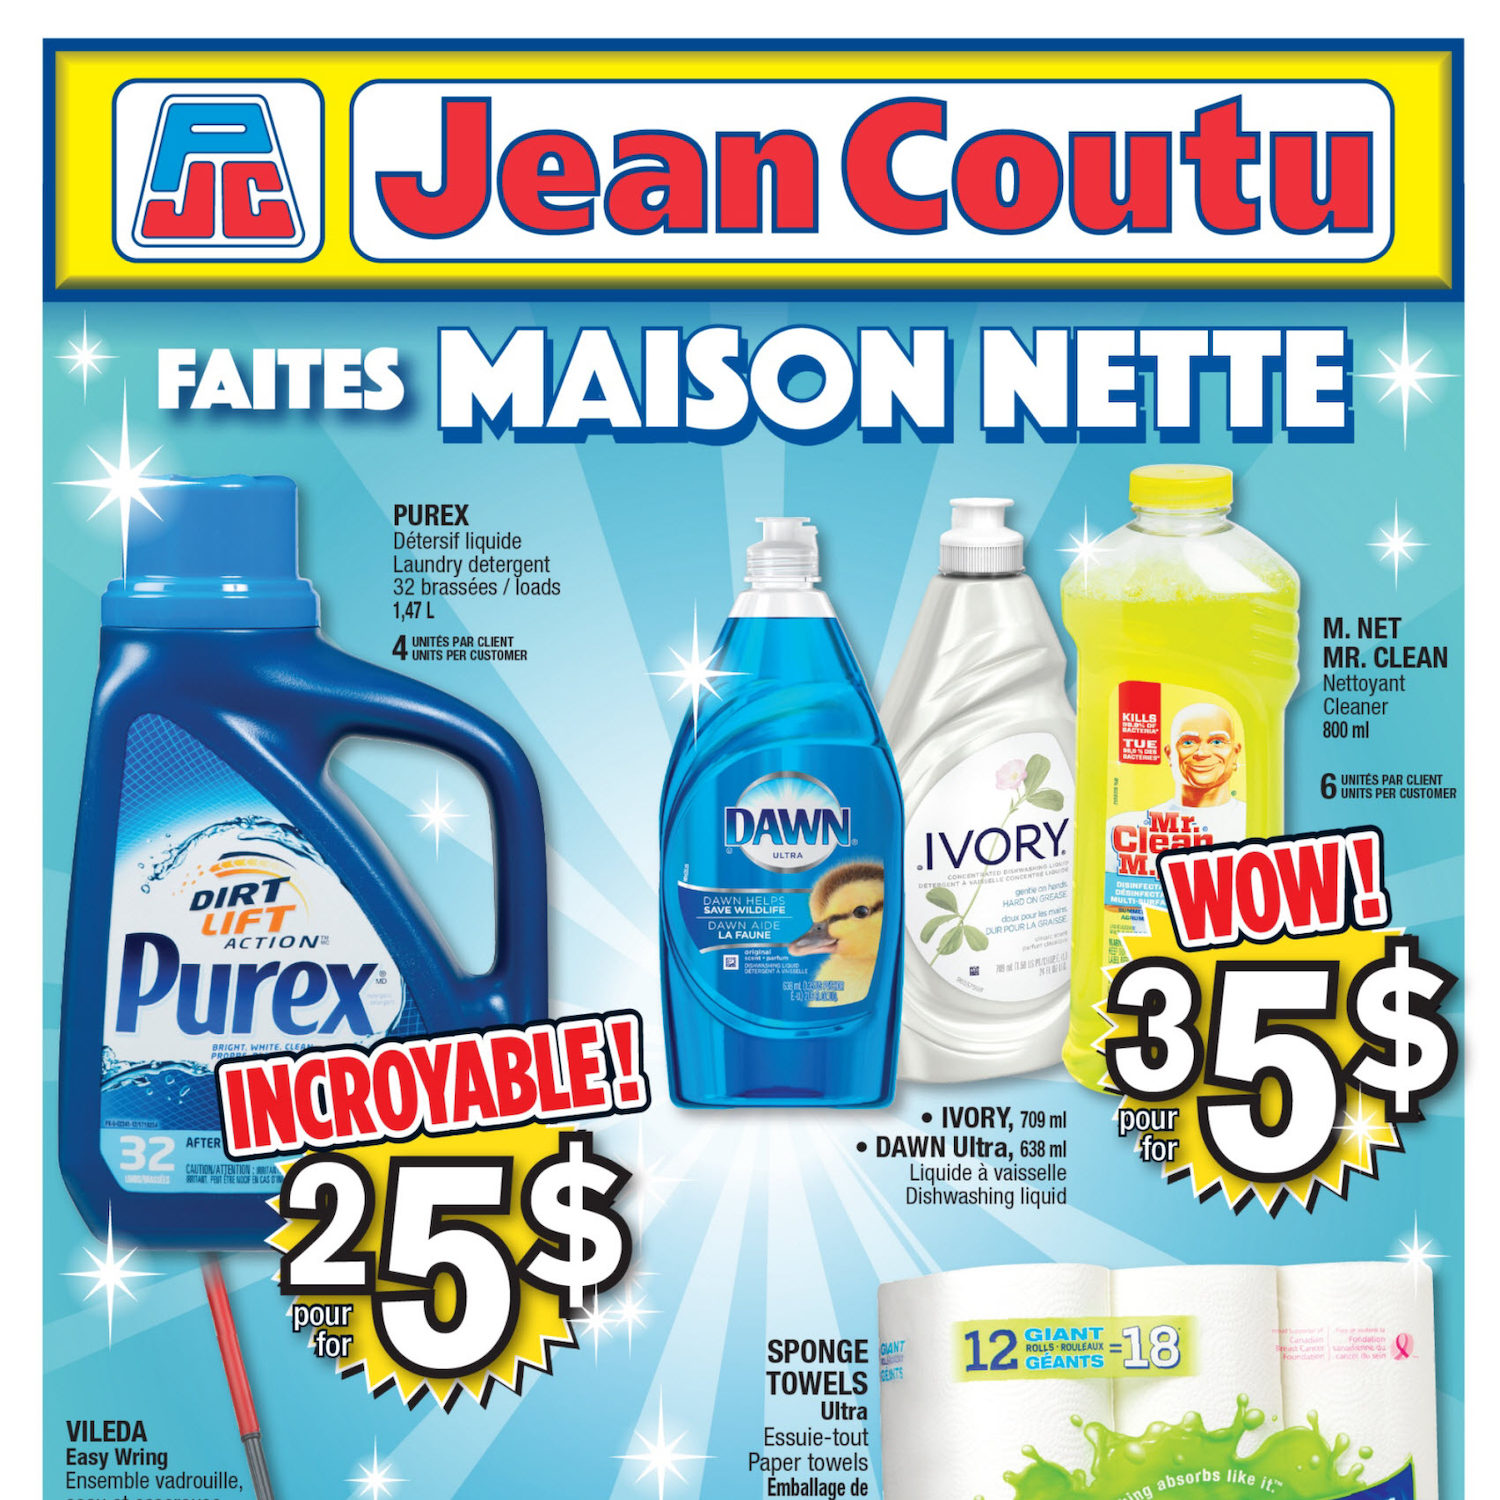 Jean Coutu Weekly Flyer Weekly Have A Clean House Apr 28 May